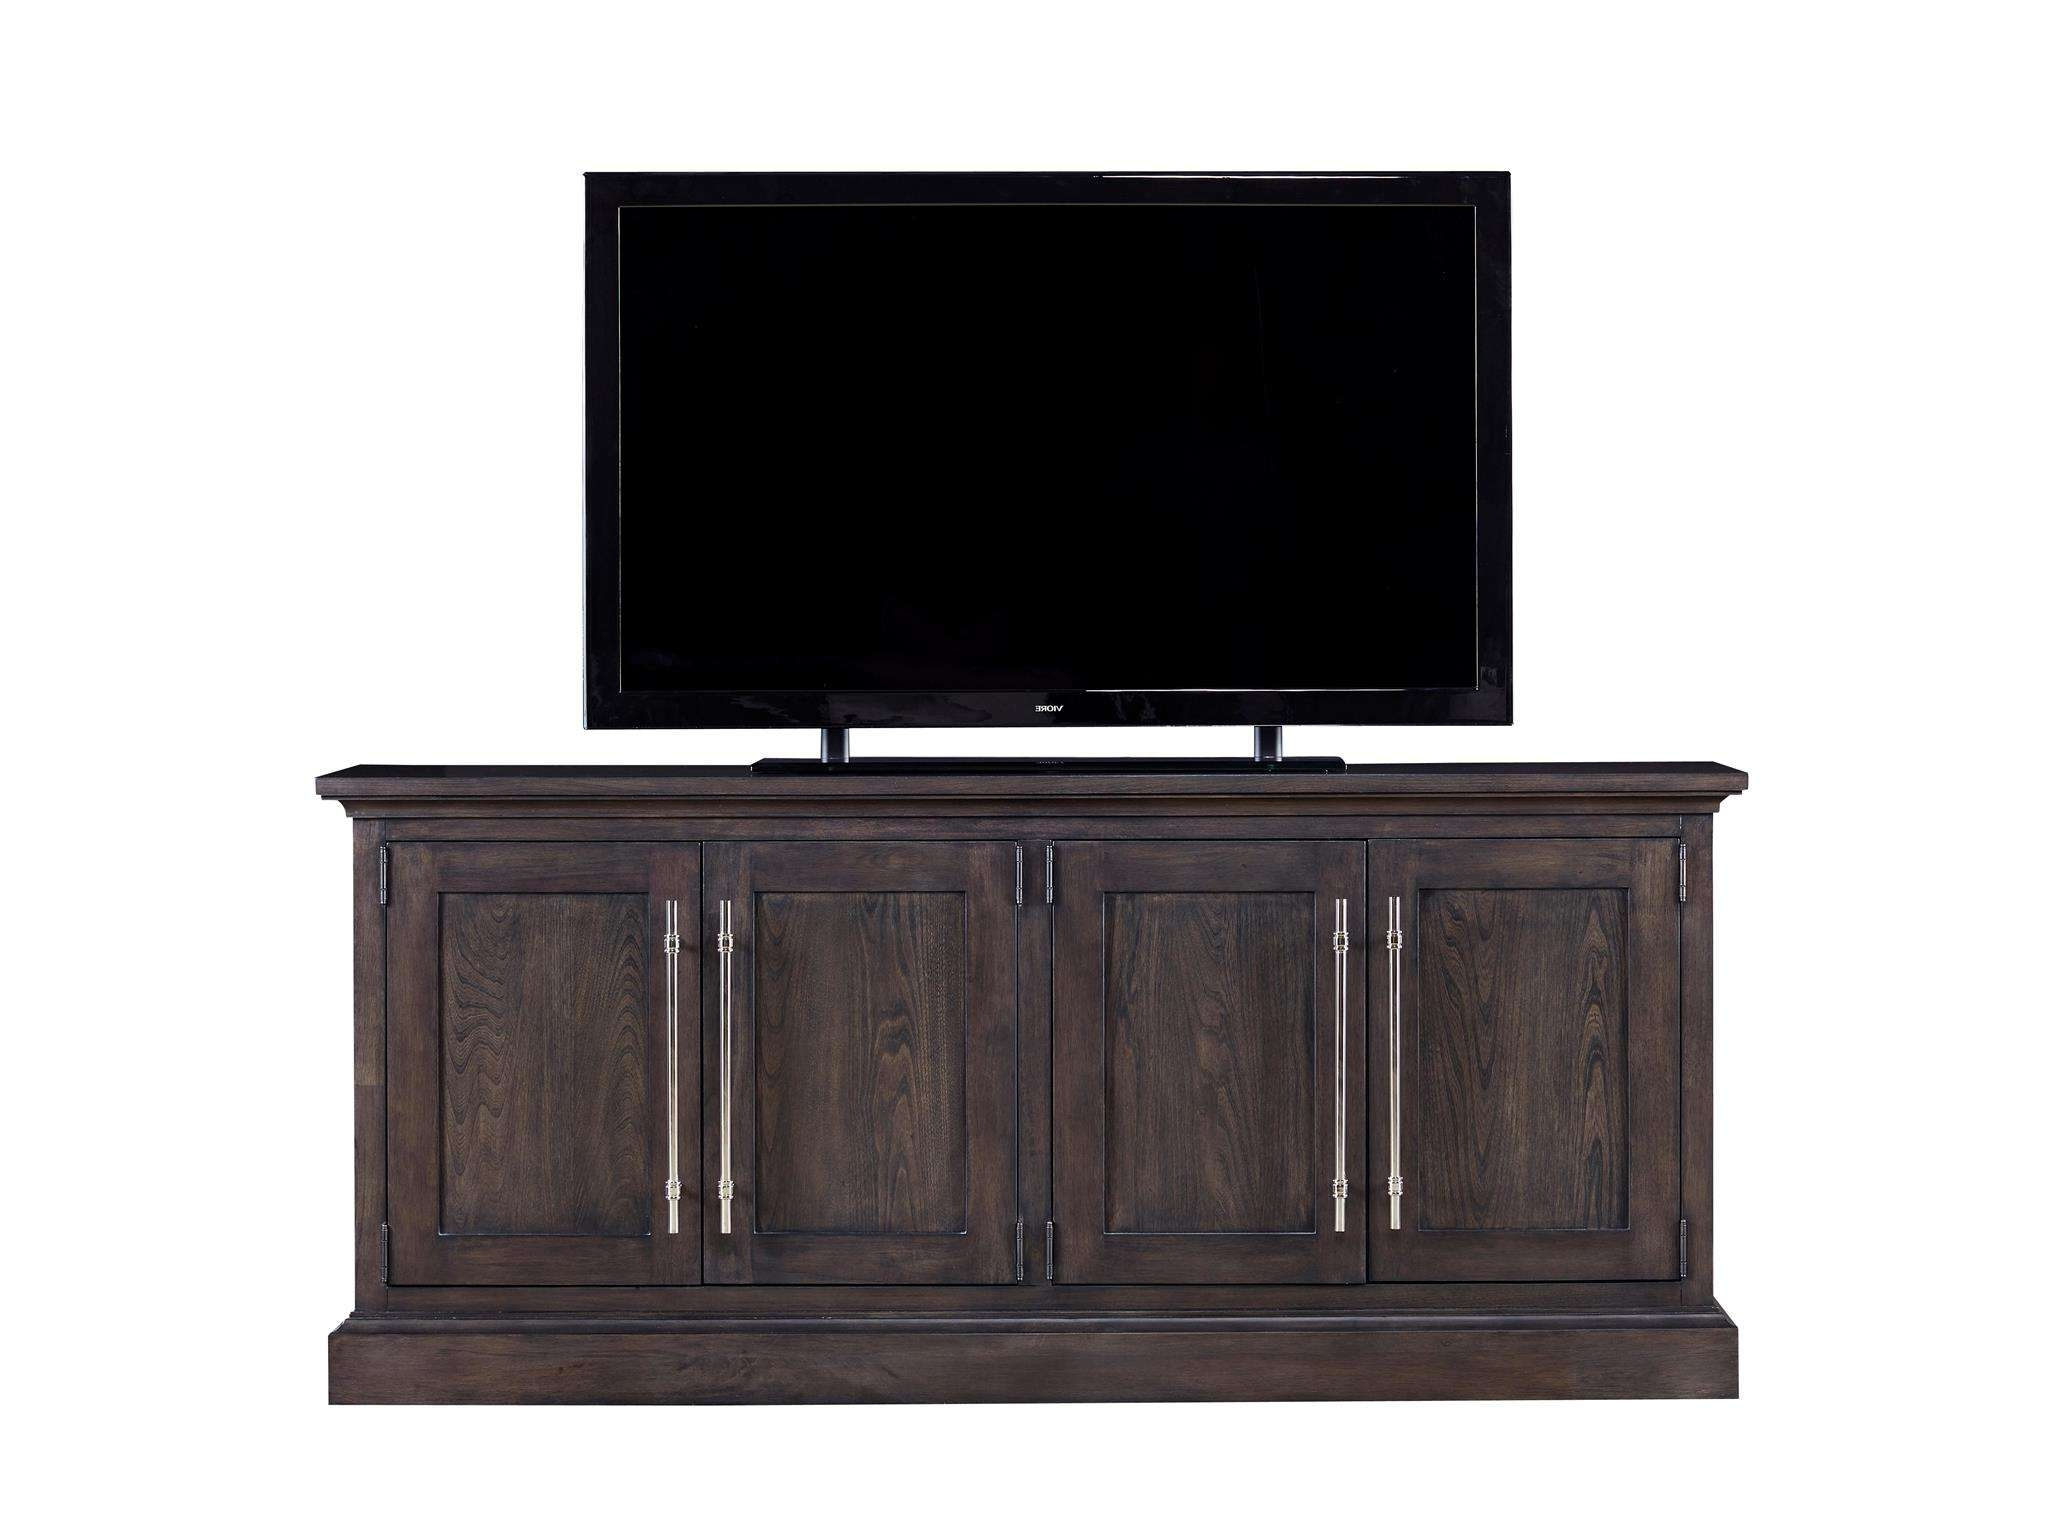 Tv : Emerson Tv Stands Shining Emerson Tv Model Lc320emxf Stand Within Emerson Tv Stands (View 5 of 15)